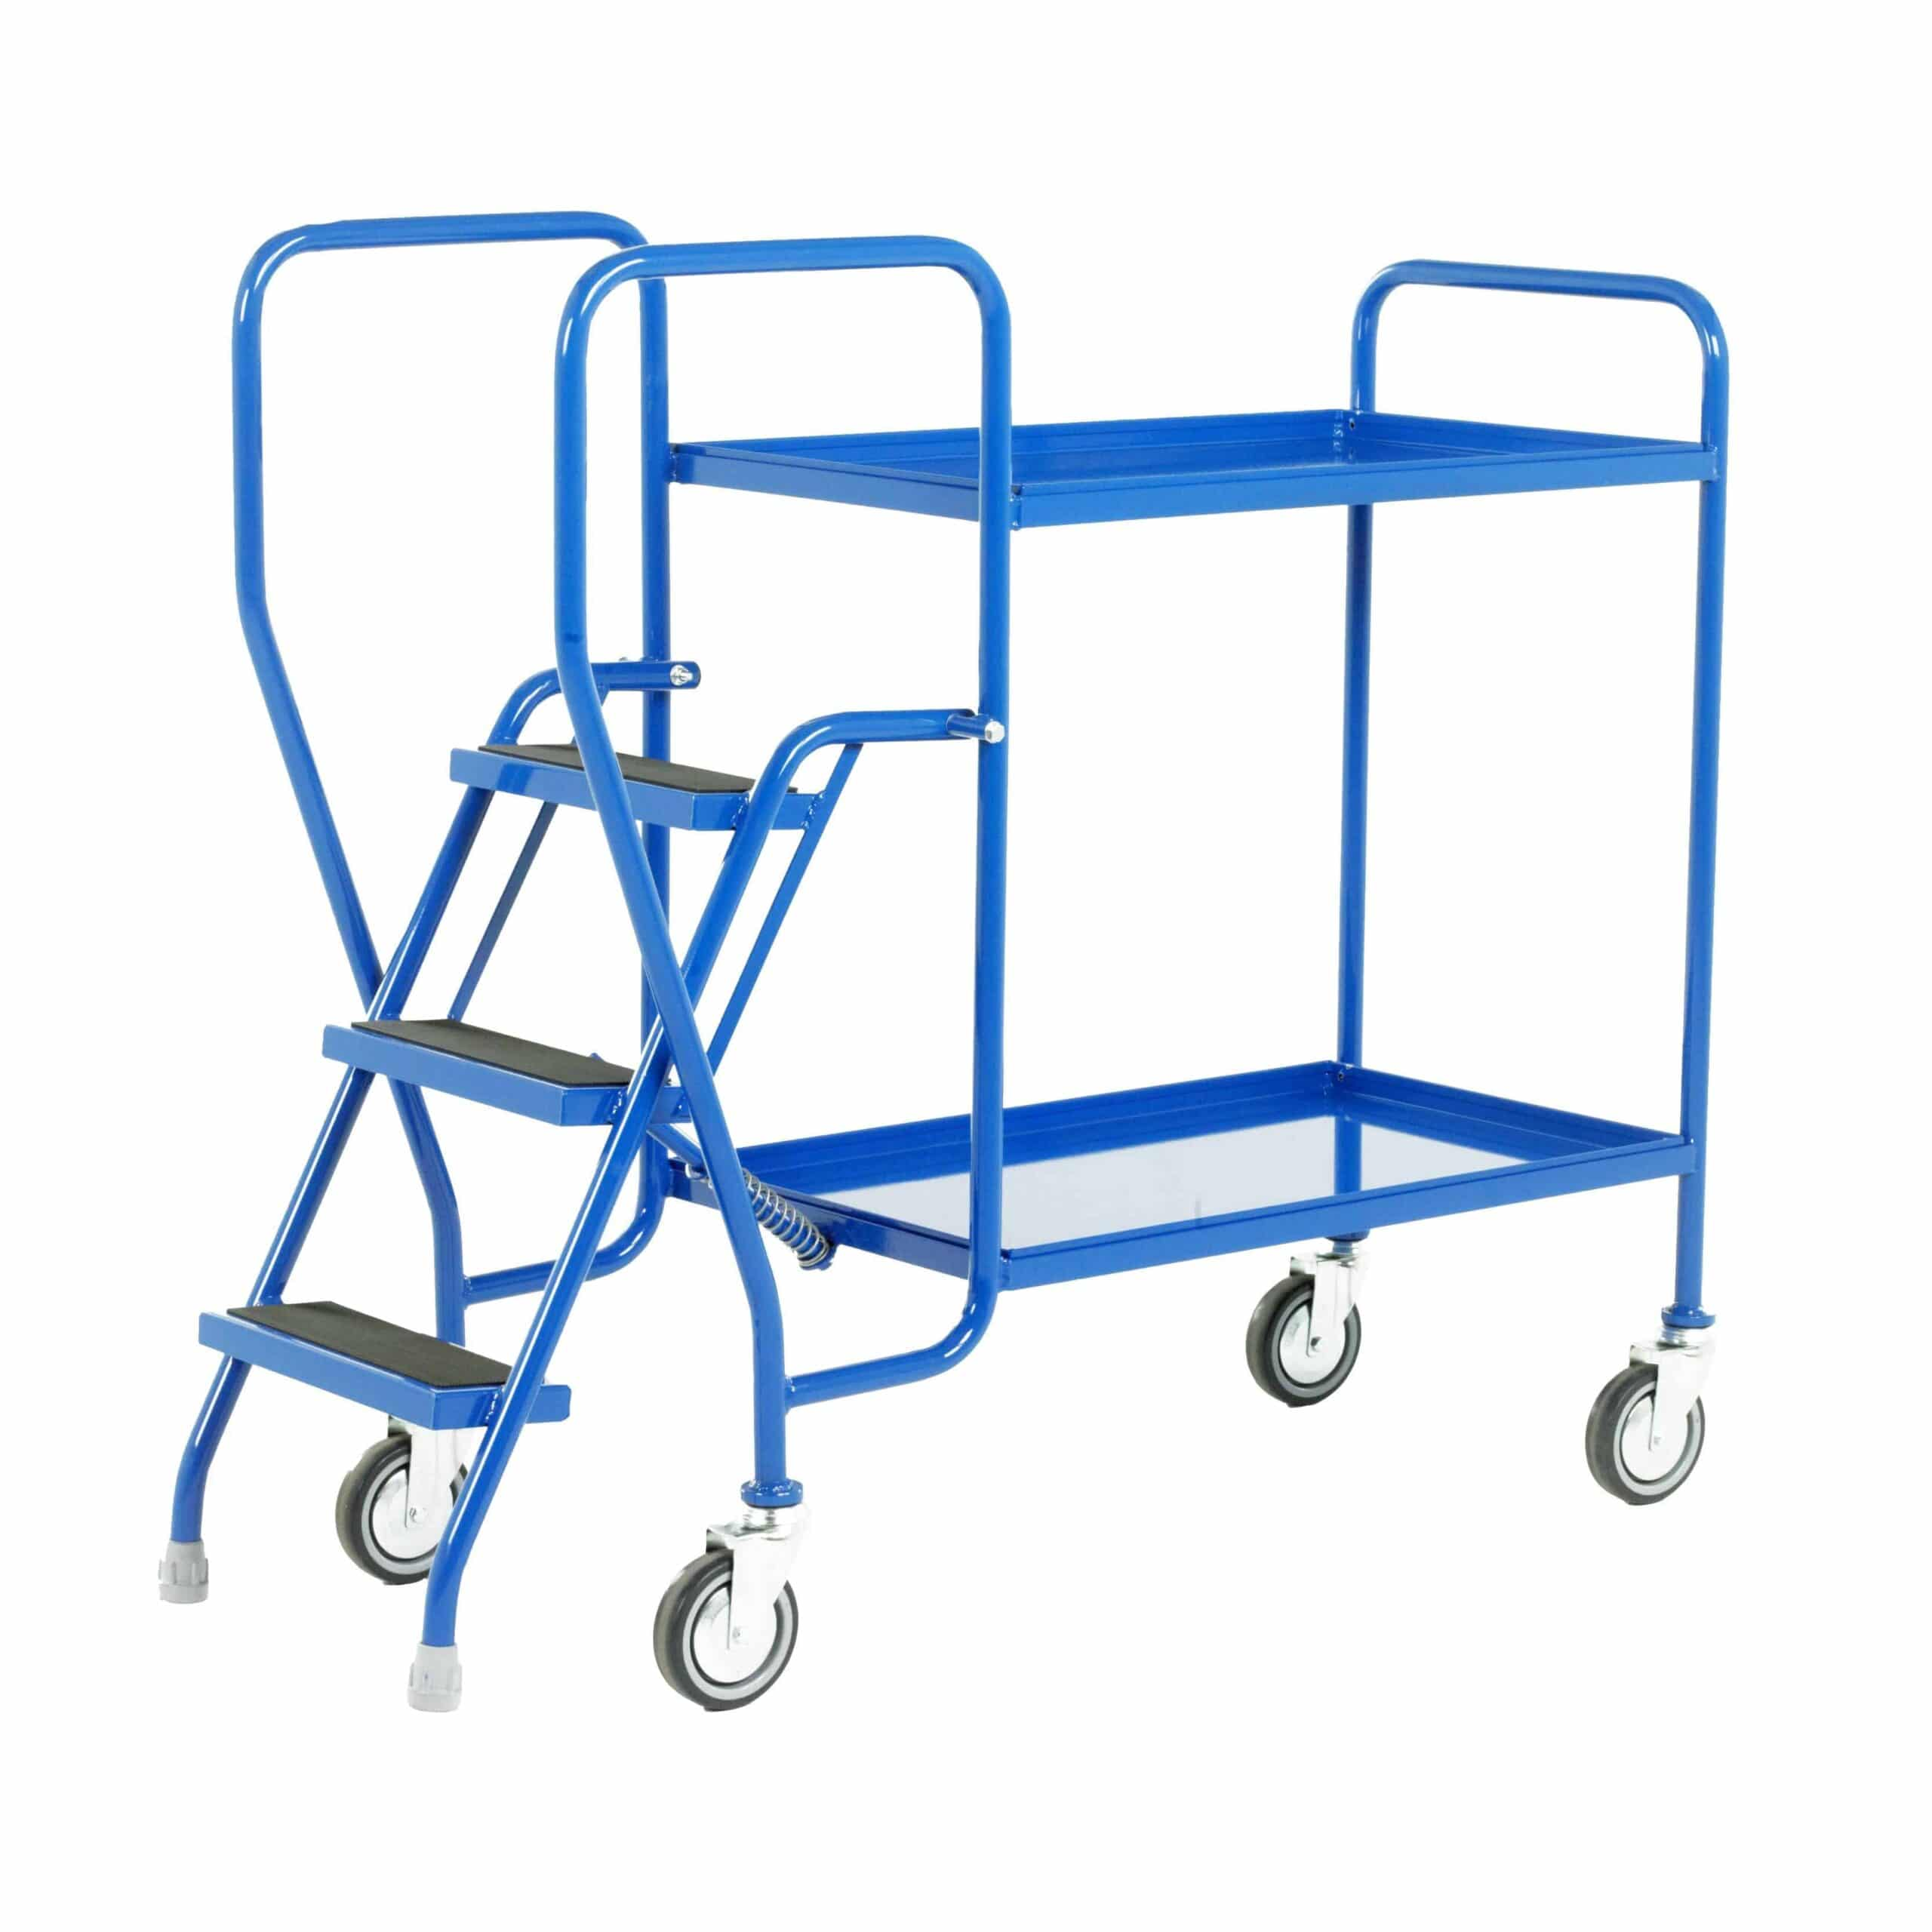 Fixed Tray 3 Step Tray Trolleys